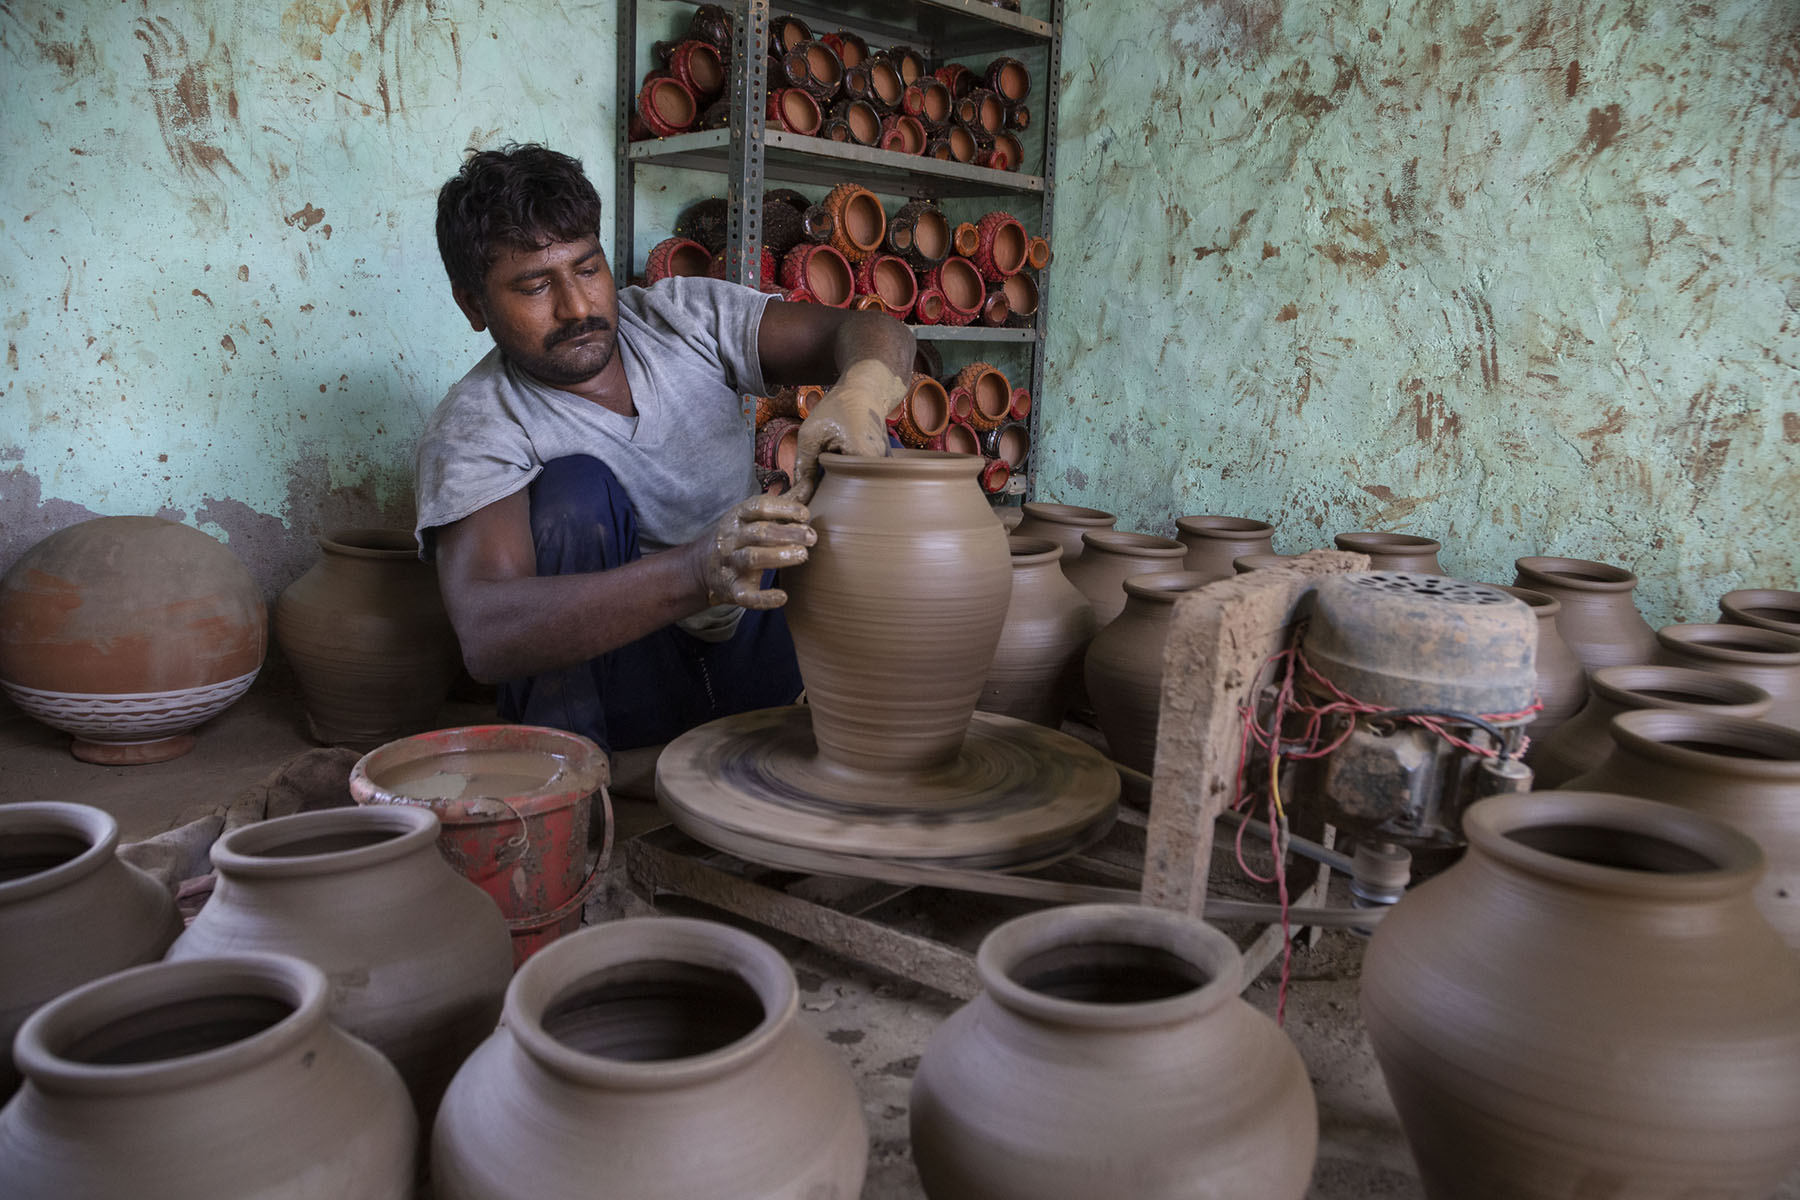 Ramotar (36), wearing grey T-shirt and black trousers, is squatting in front of the potter's wheel, shaping a clay pot with both hands. He has a moustache and short, wavy black hair. He is surrounded by around 15 unfinished water pots that have not yet been dried and baked. A metal rack behind him is stacked with three shelves of finished diyas (clay lamps).